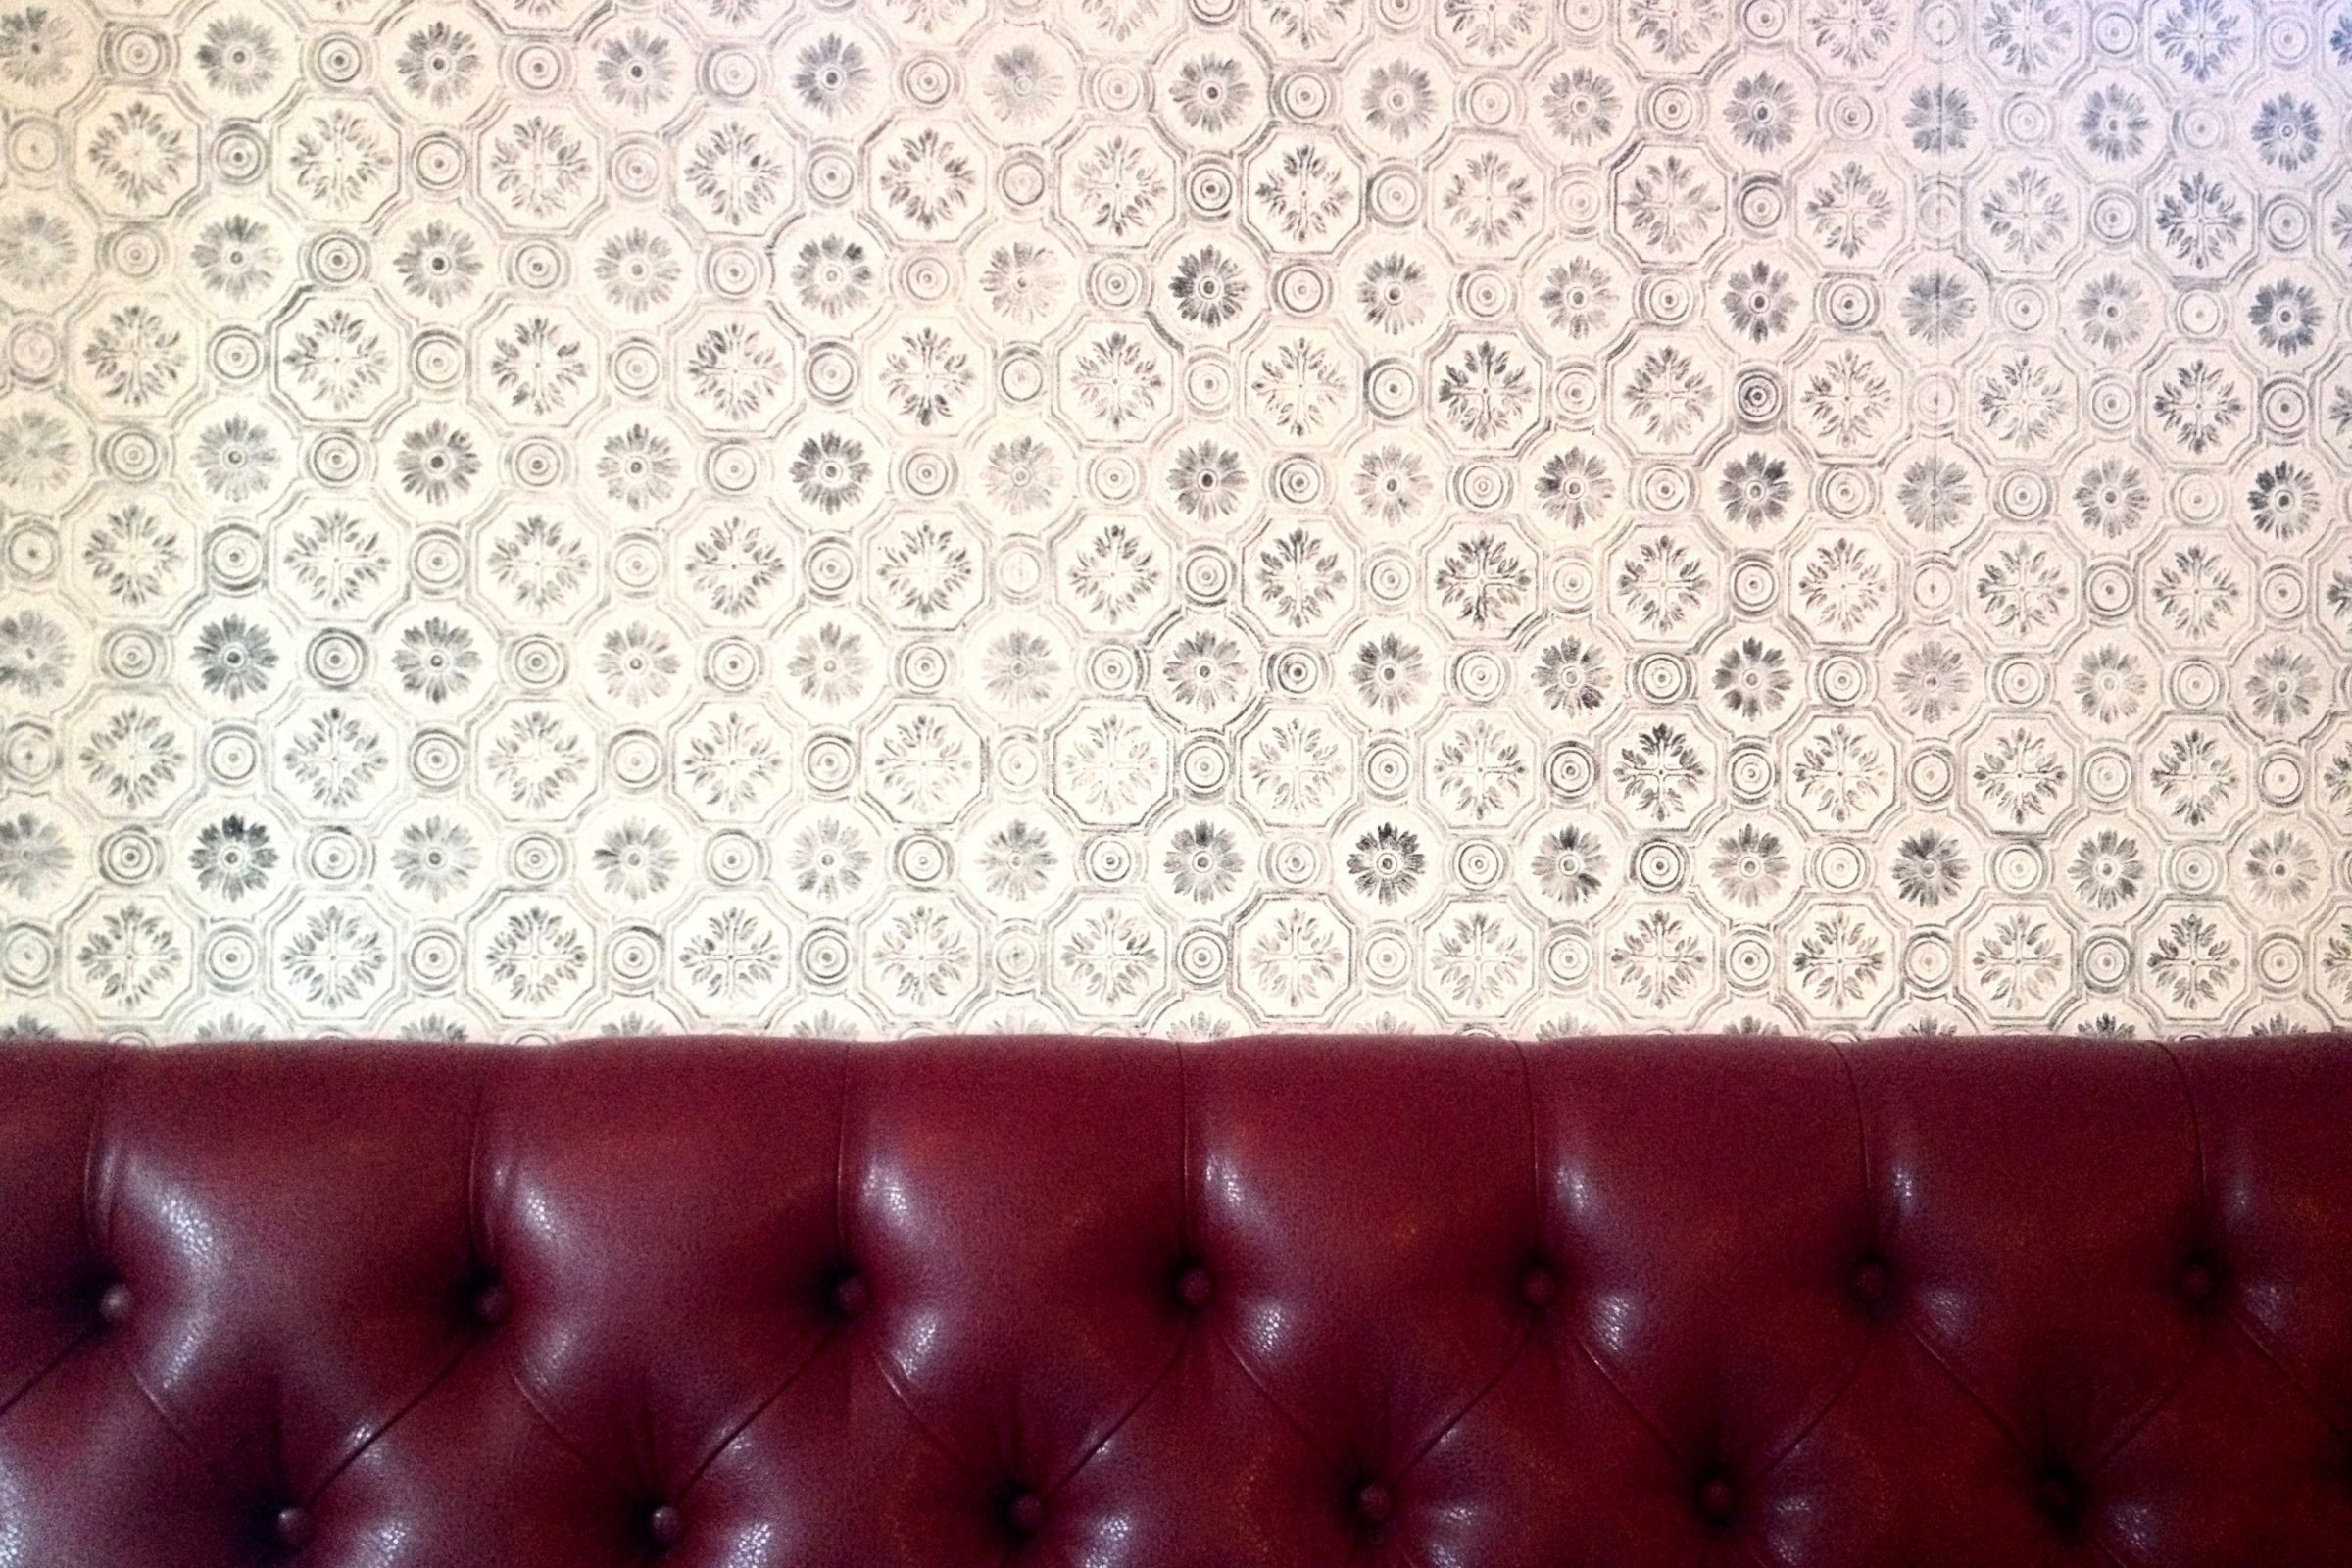 Red Vinyl Seat on Patterned Wallpaper